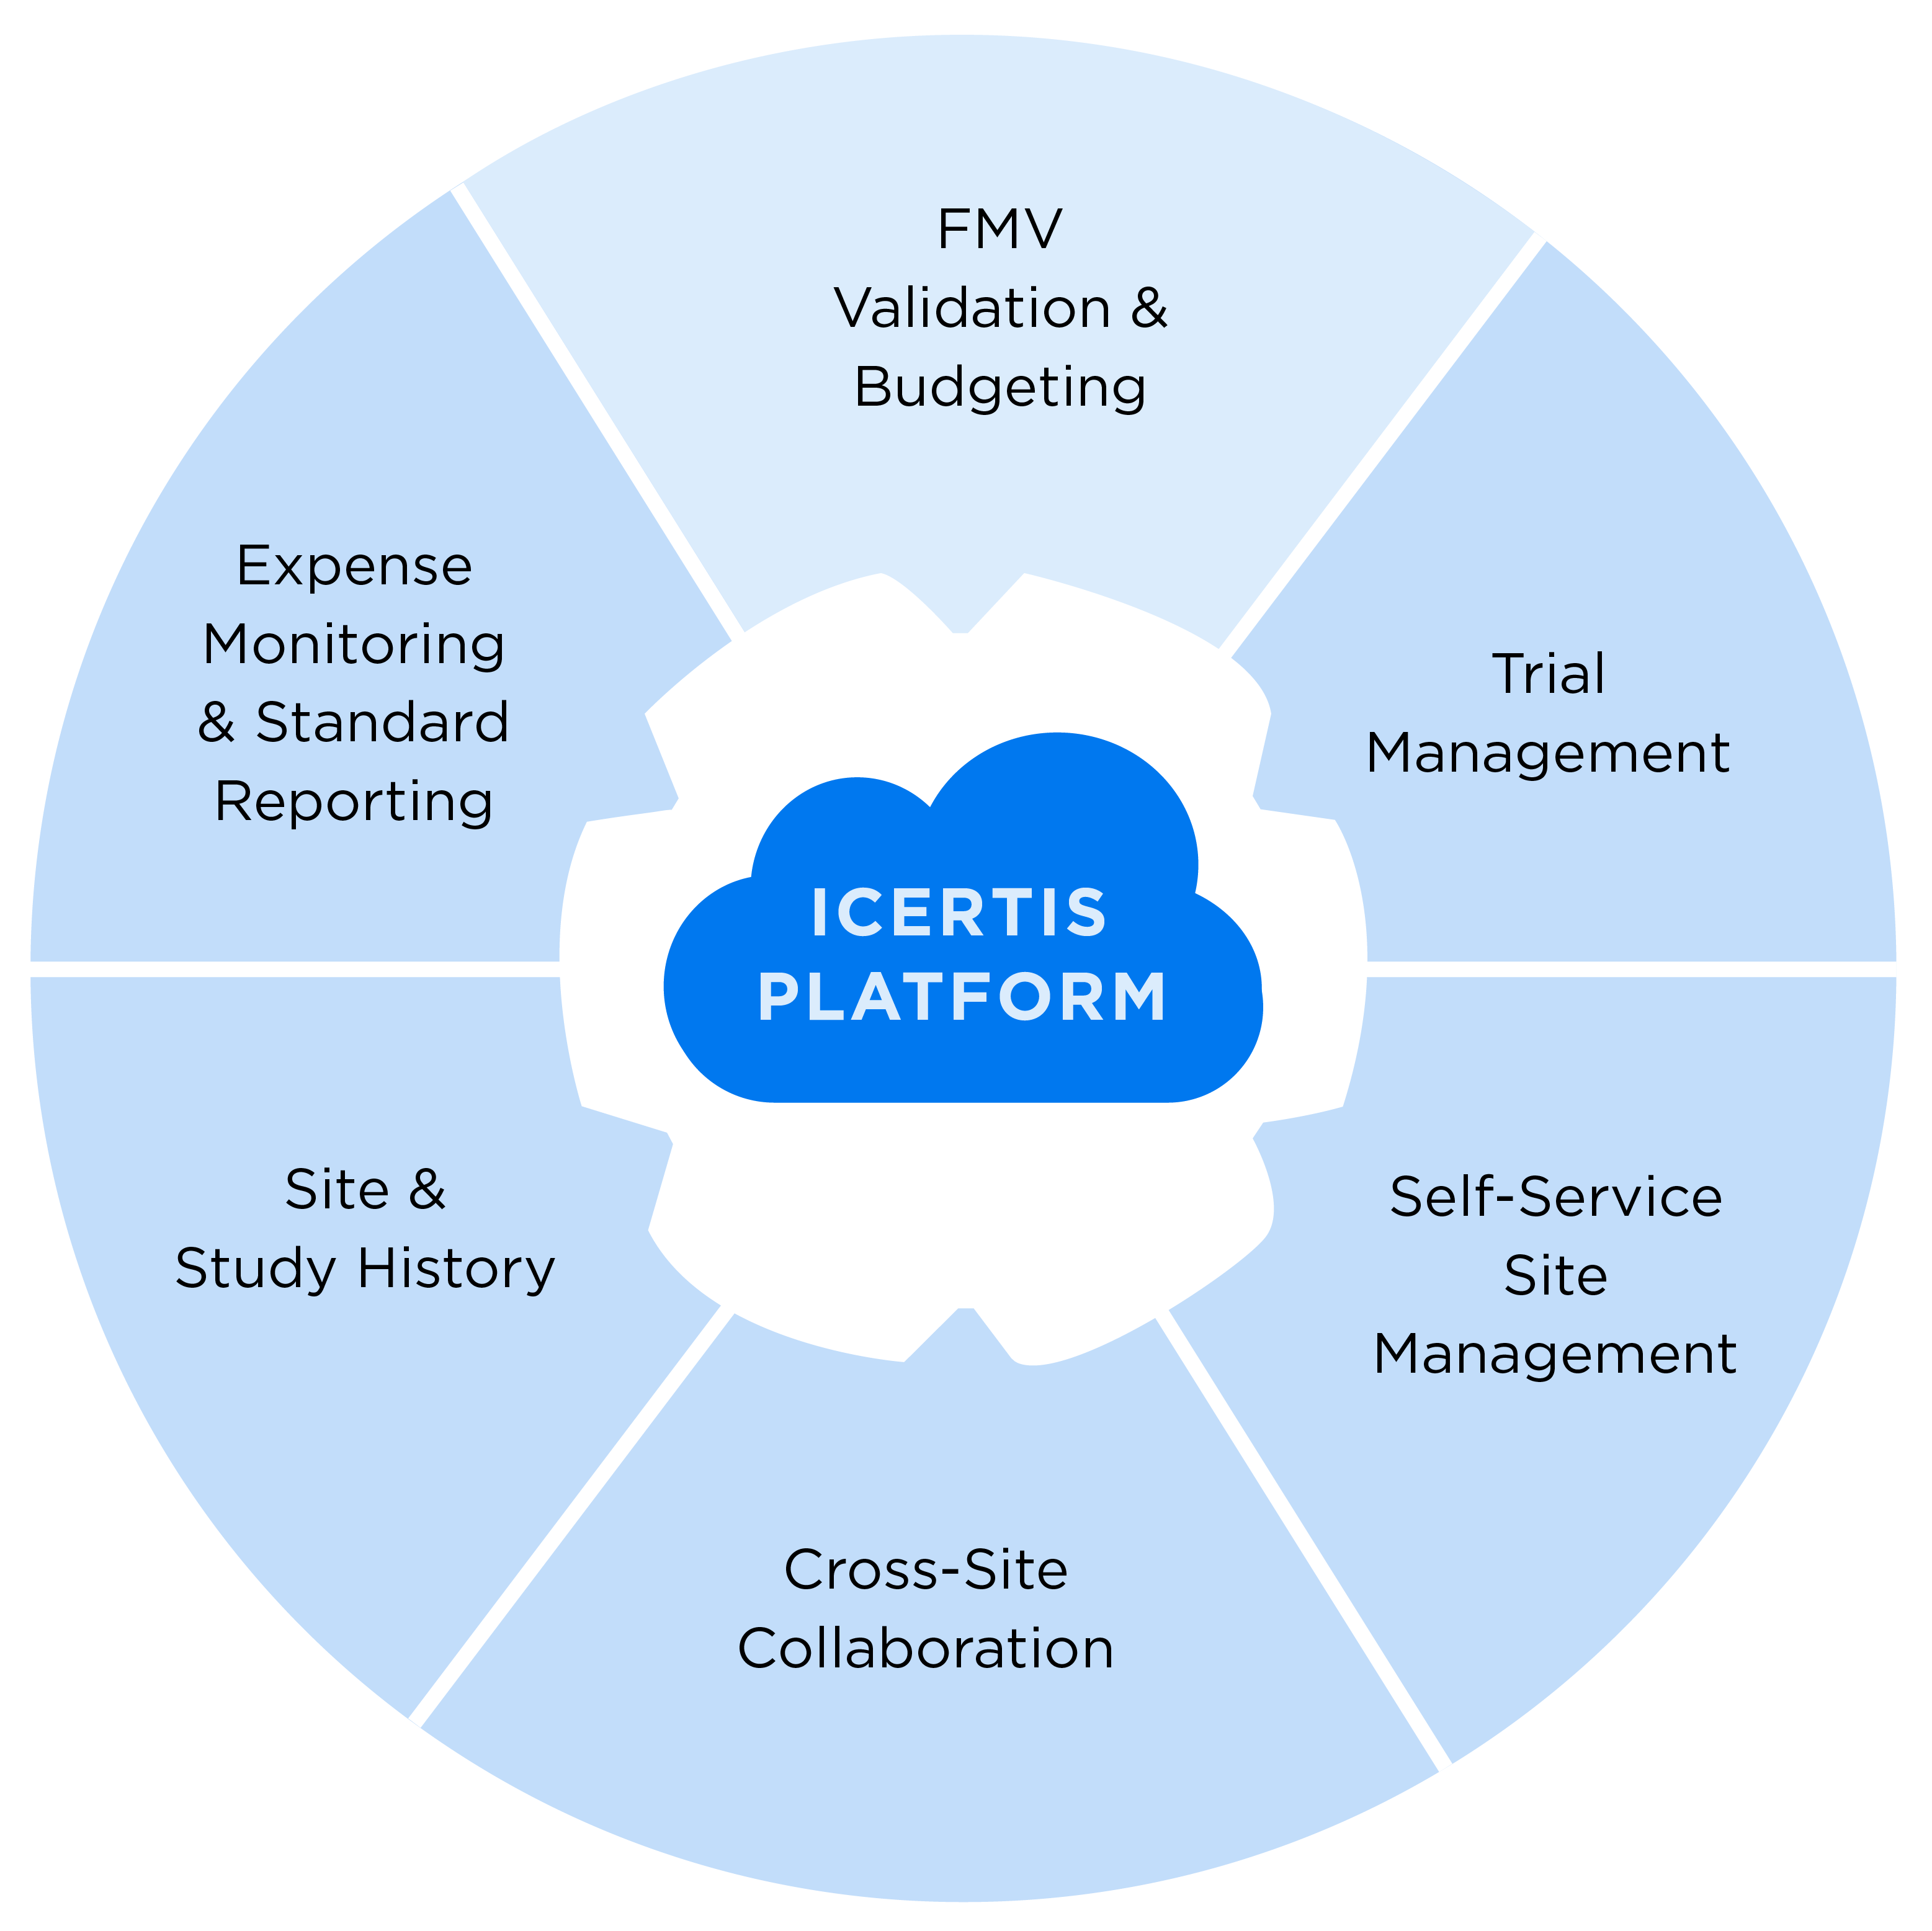 Icertis Platform graphic with 6 sections: FMV validation & budgeting, Trial Management, Self-Service Site Management, Cross-site Collaboration, Site & Study History, and Expense Monitoring & Standard Reporting